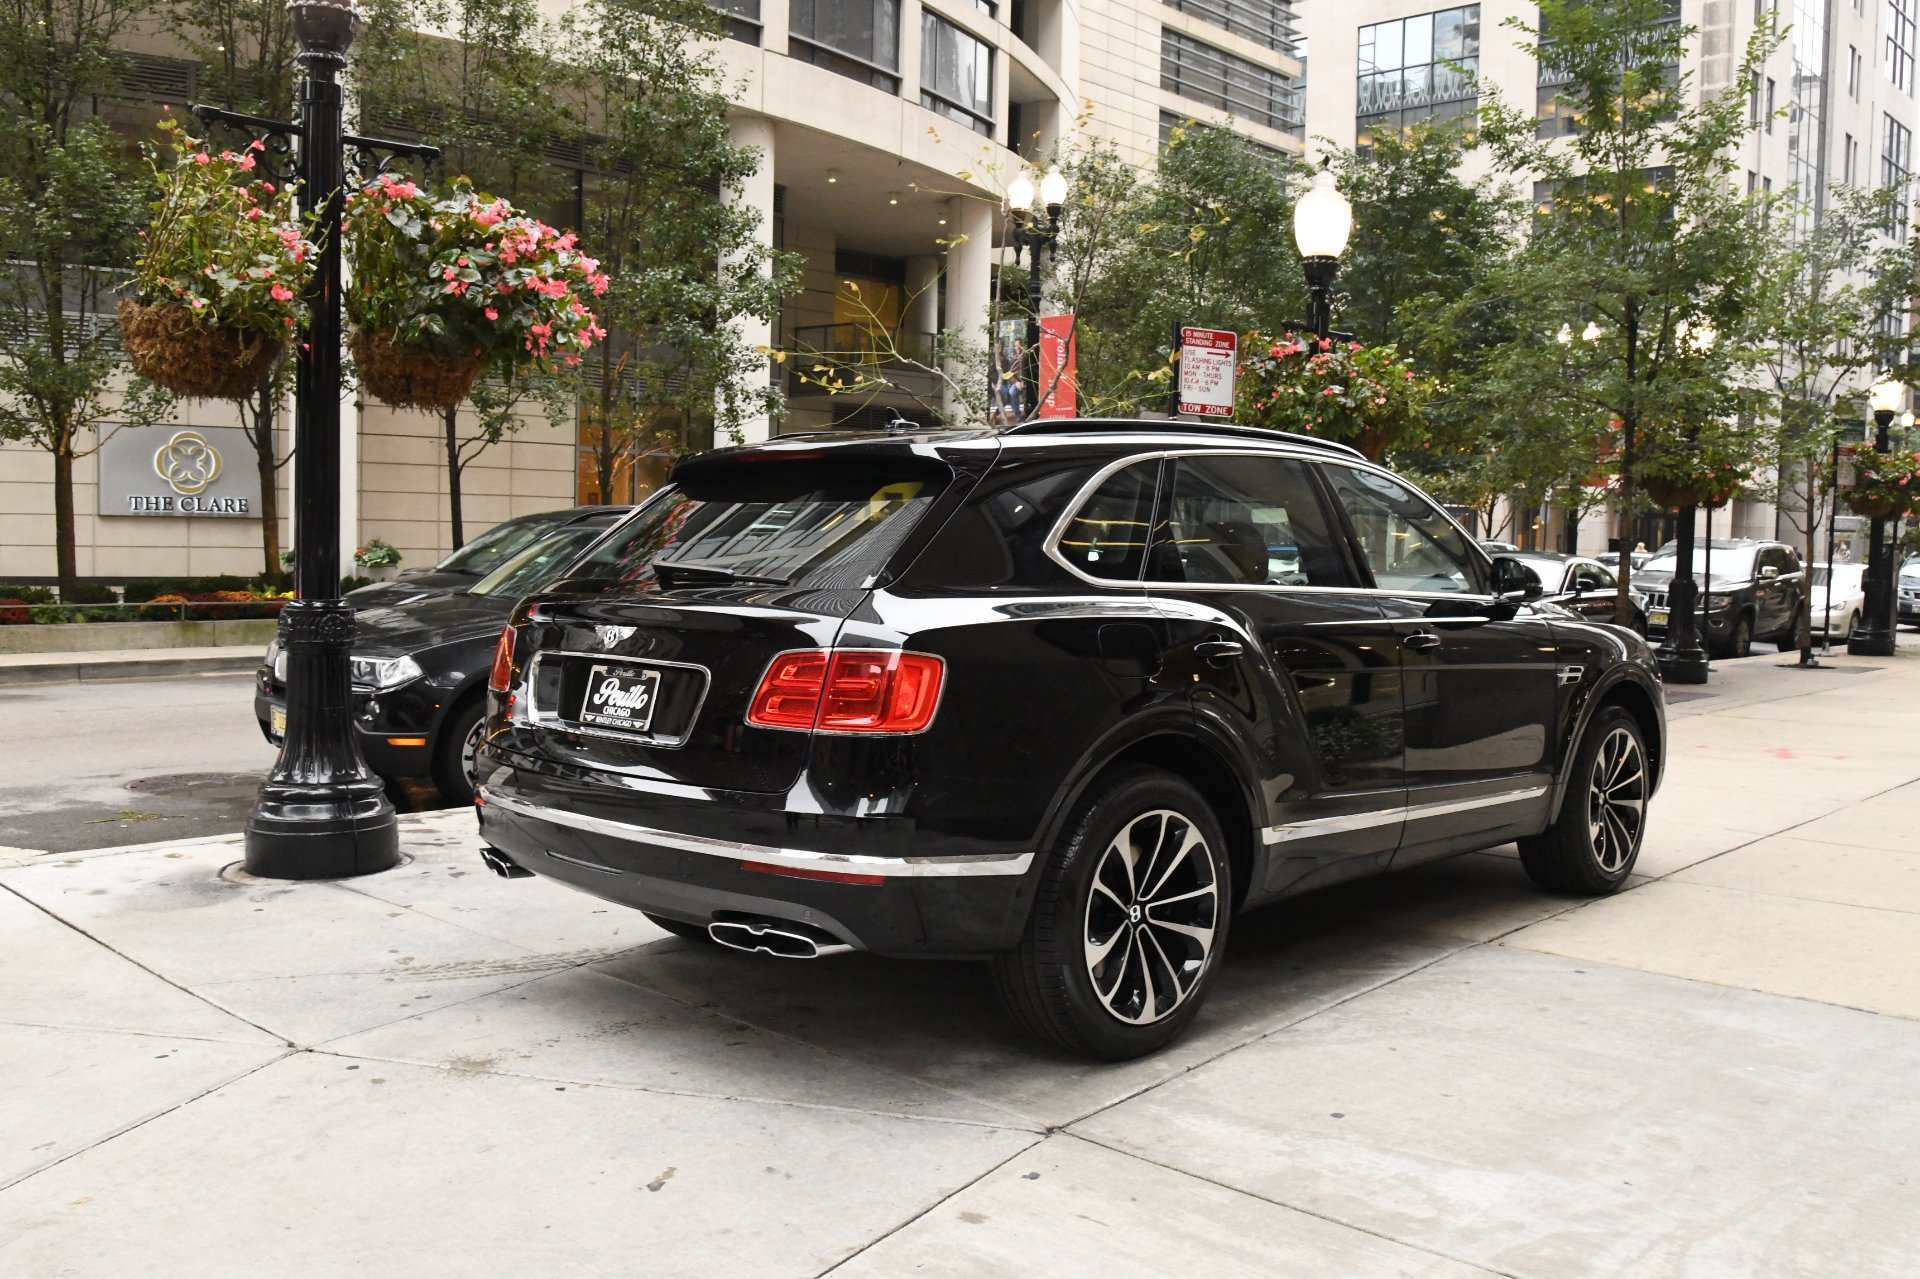 98 Gallery of 2019 Bentley Bentayga V8 Price Release Date with 2019 Bentley Bentayga V8 Price